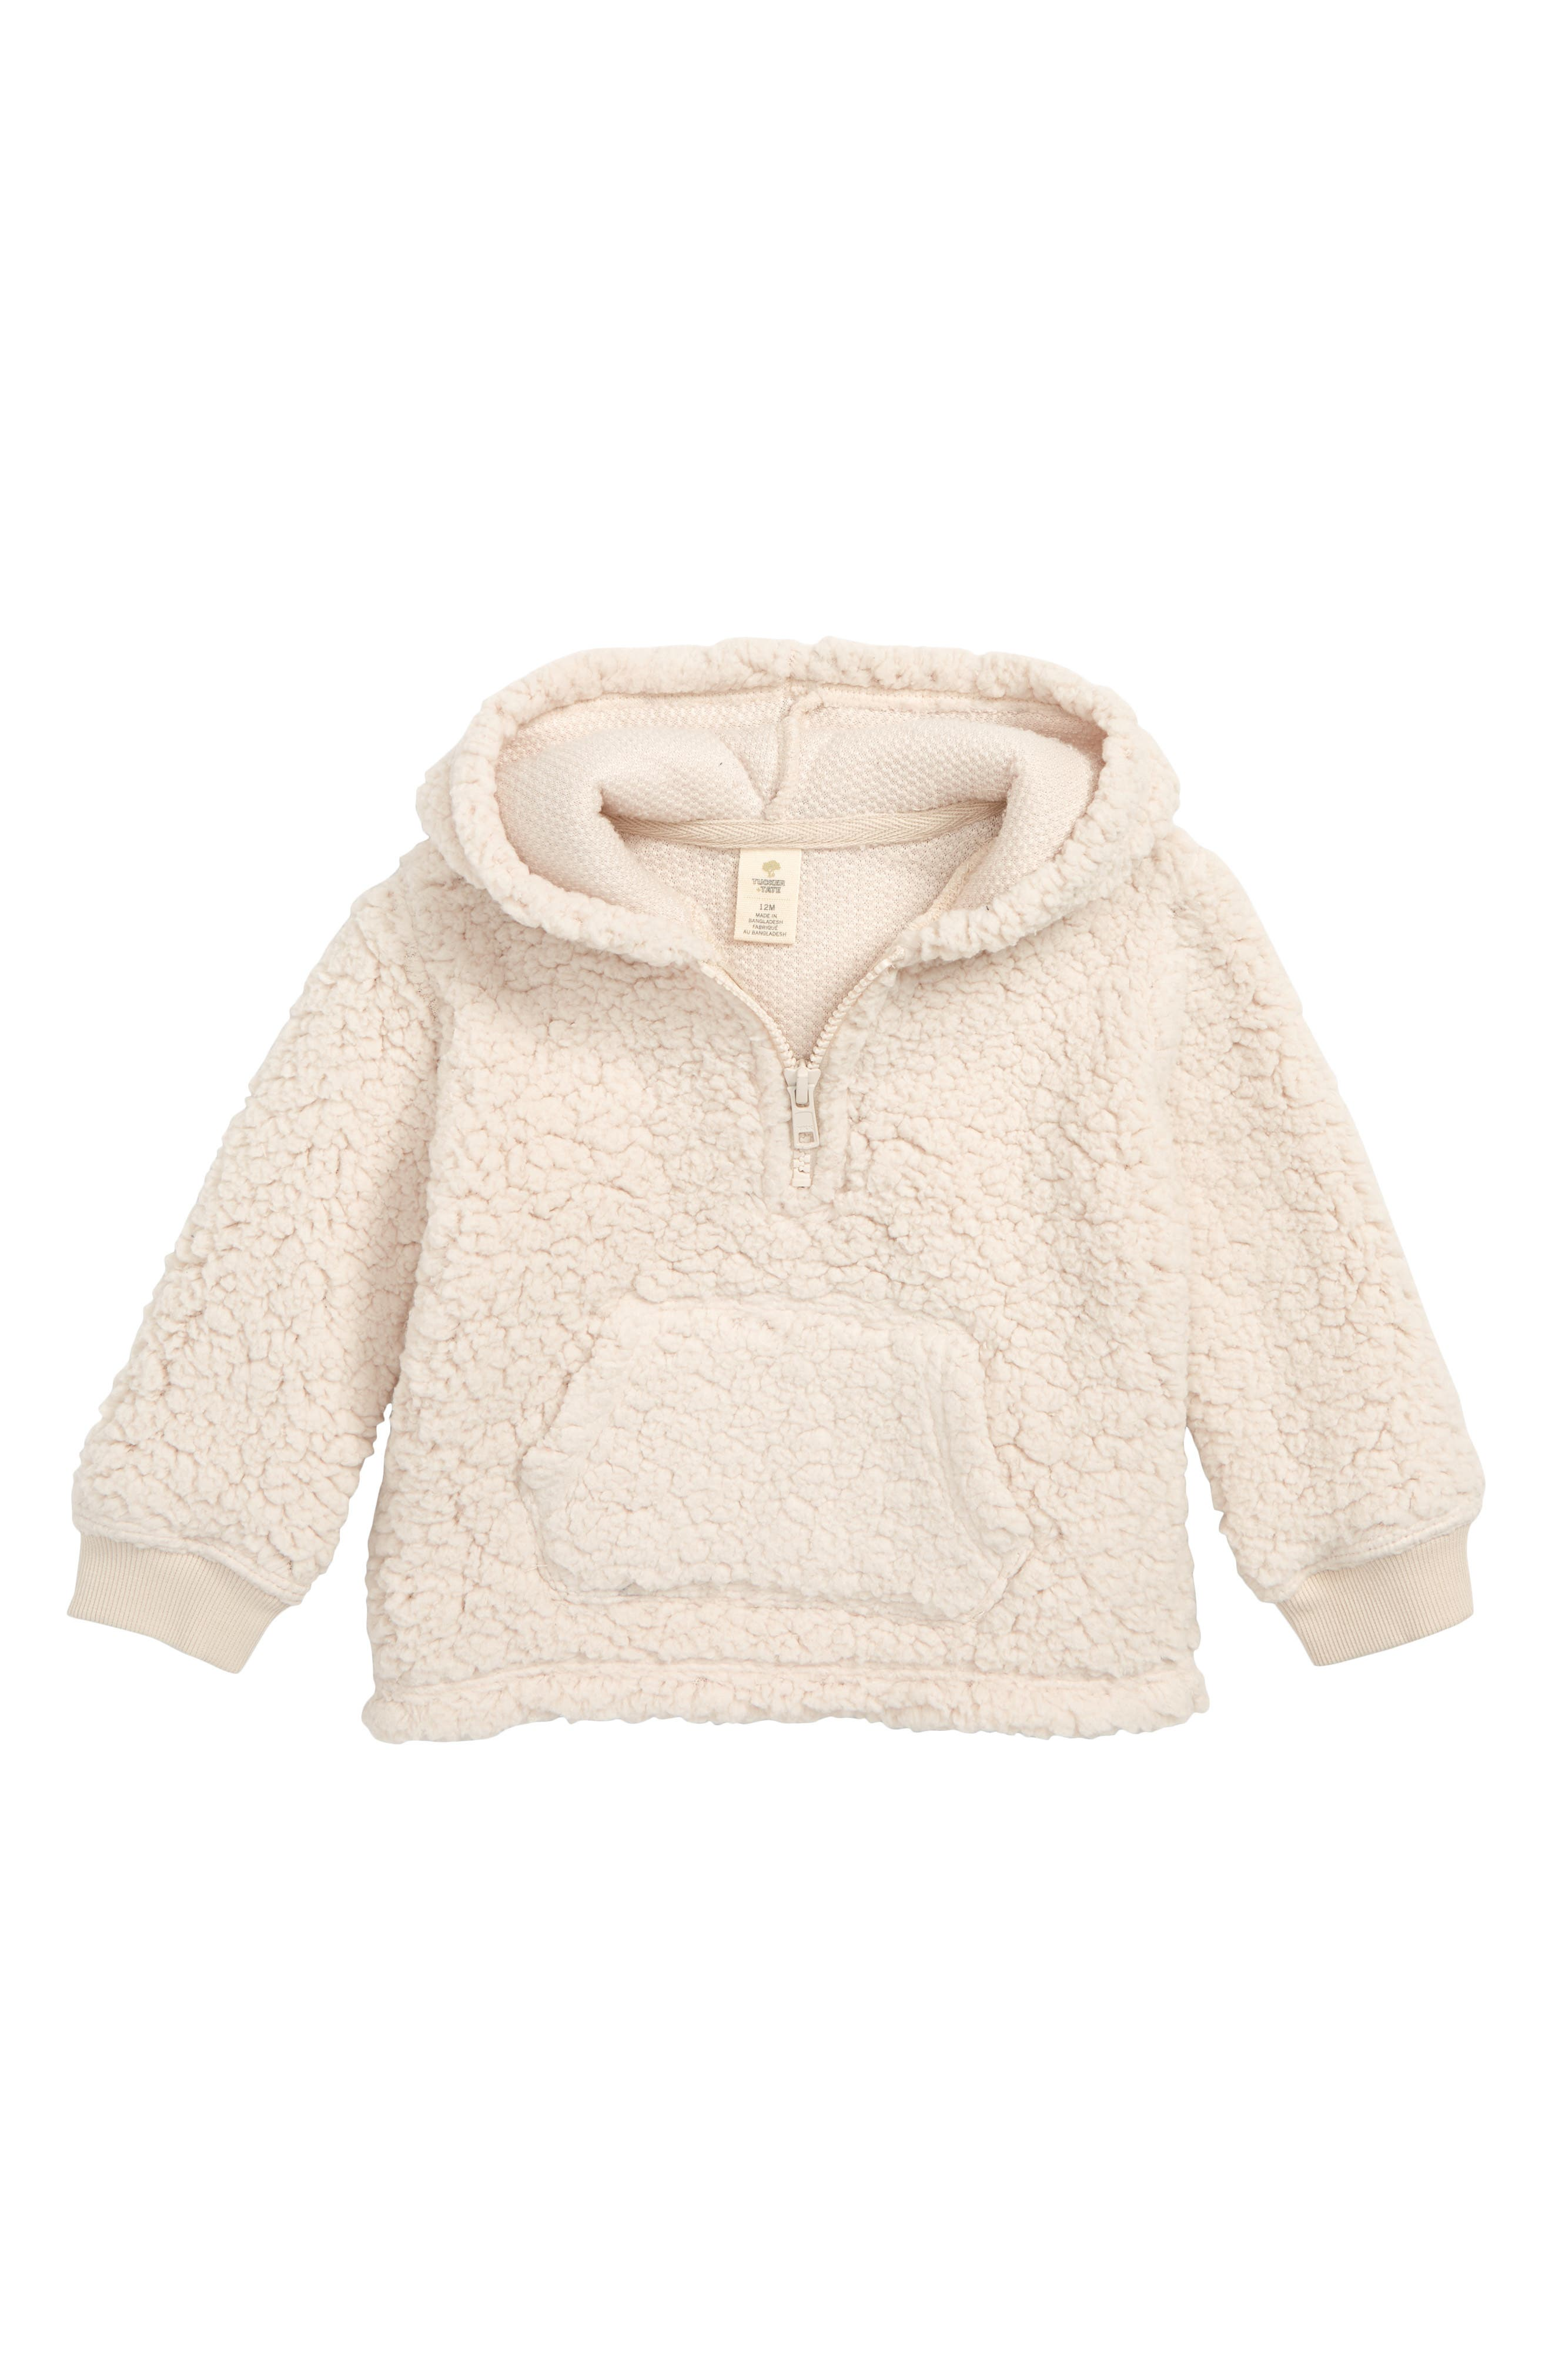 TUCKER + TATE Faux Fur Pullover Hoodie, Main, color, IVORY EGRET